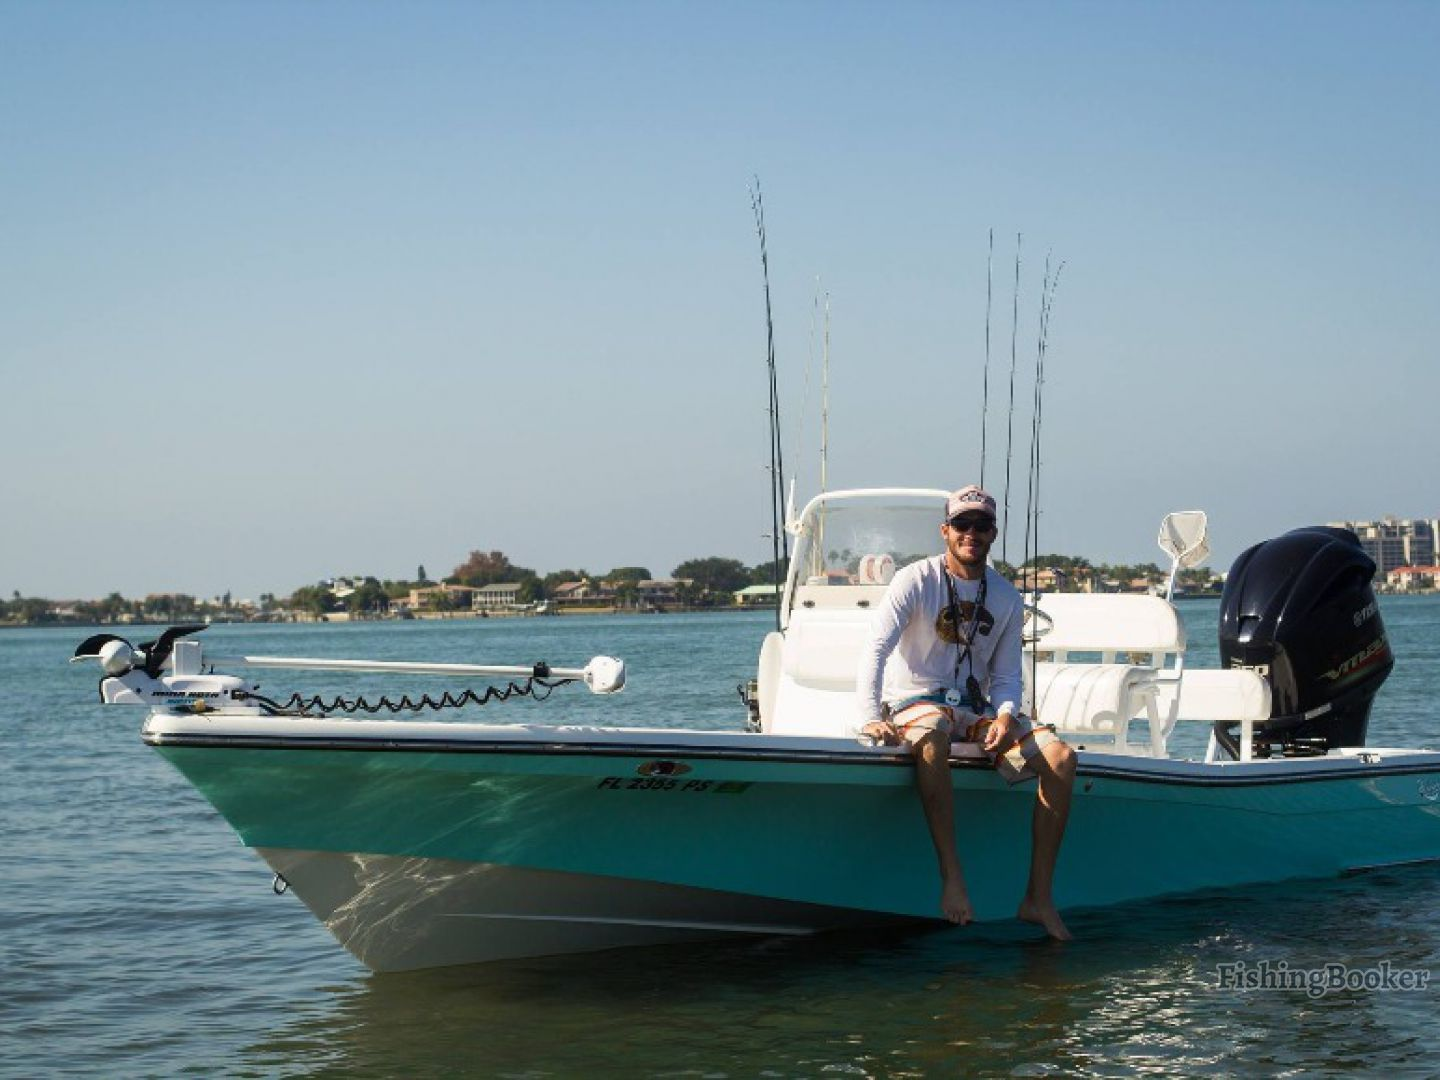 Prime tide fishing charters clearwater florida for Clearwater beach florida fishing charters